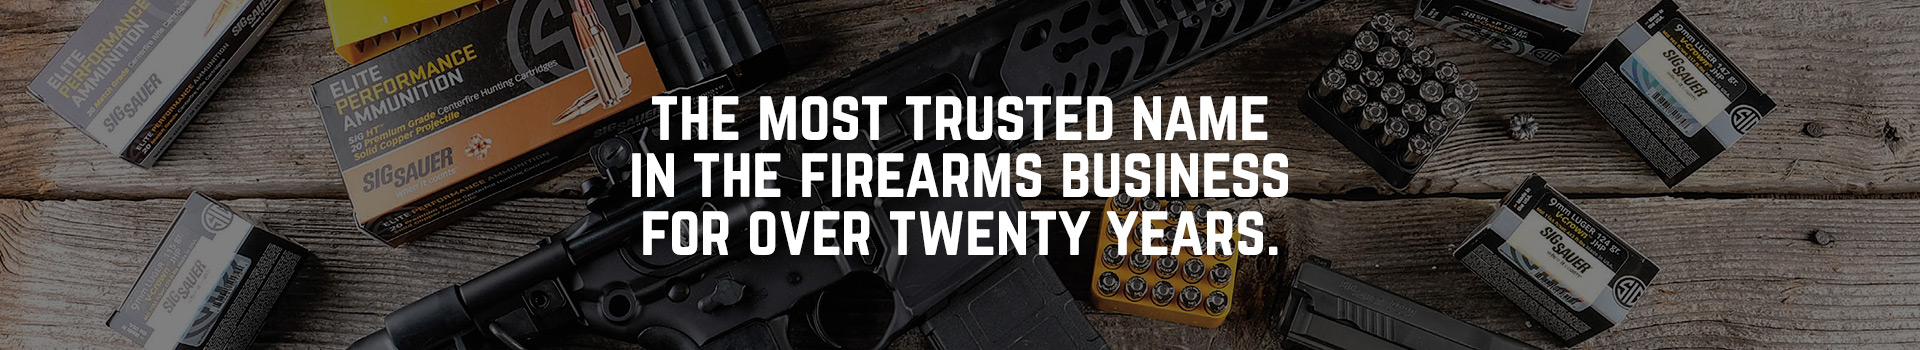 Guns, Ammo & Accessories - Online Gun Dealers | Impact Guns